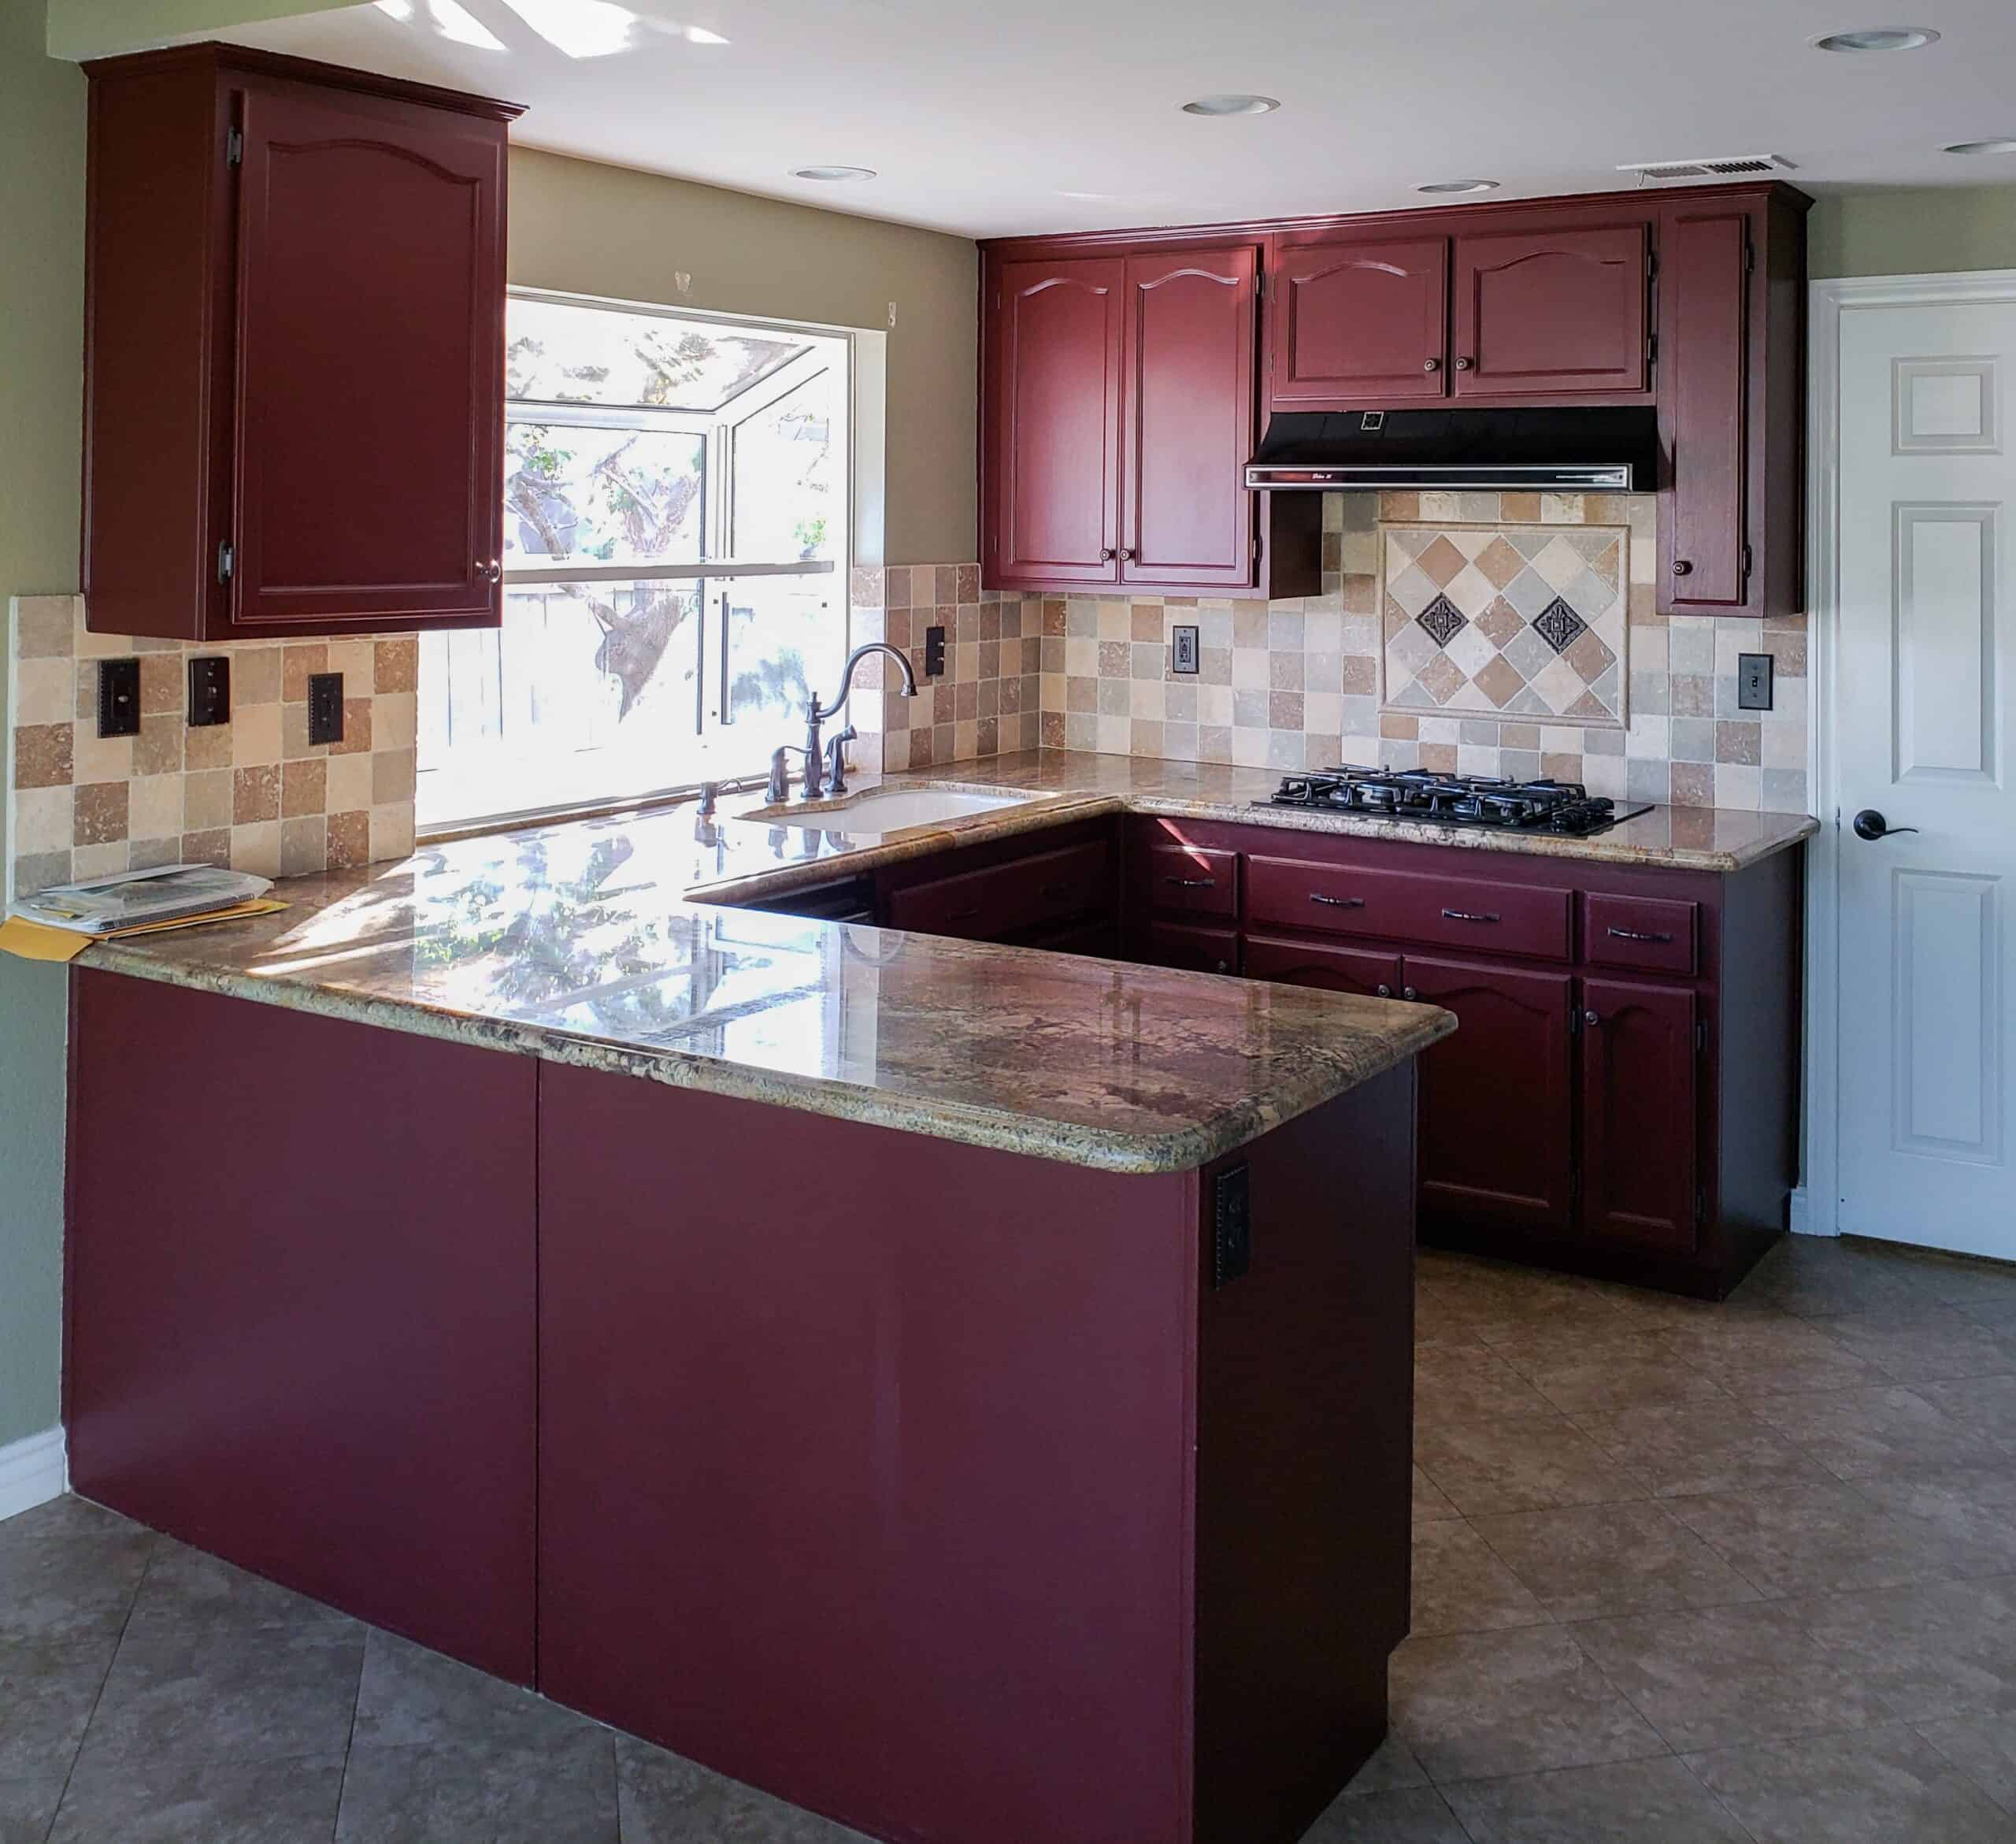 before photo of outdated kitchen with maroon cabinets